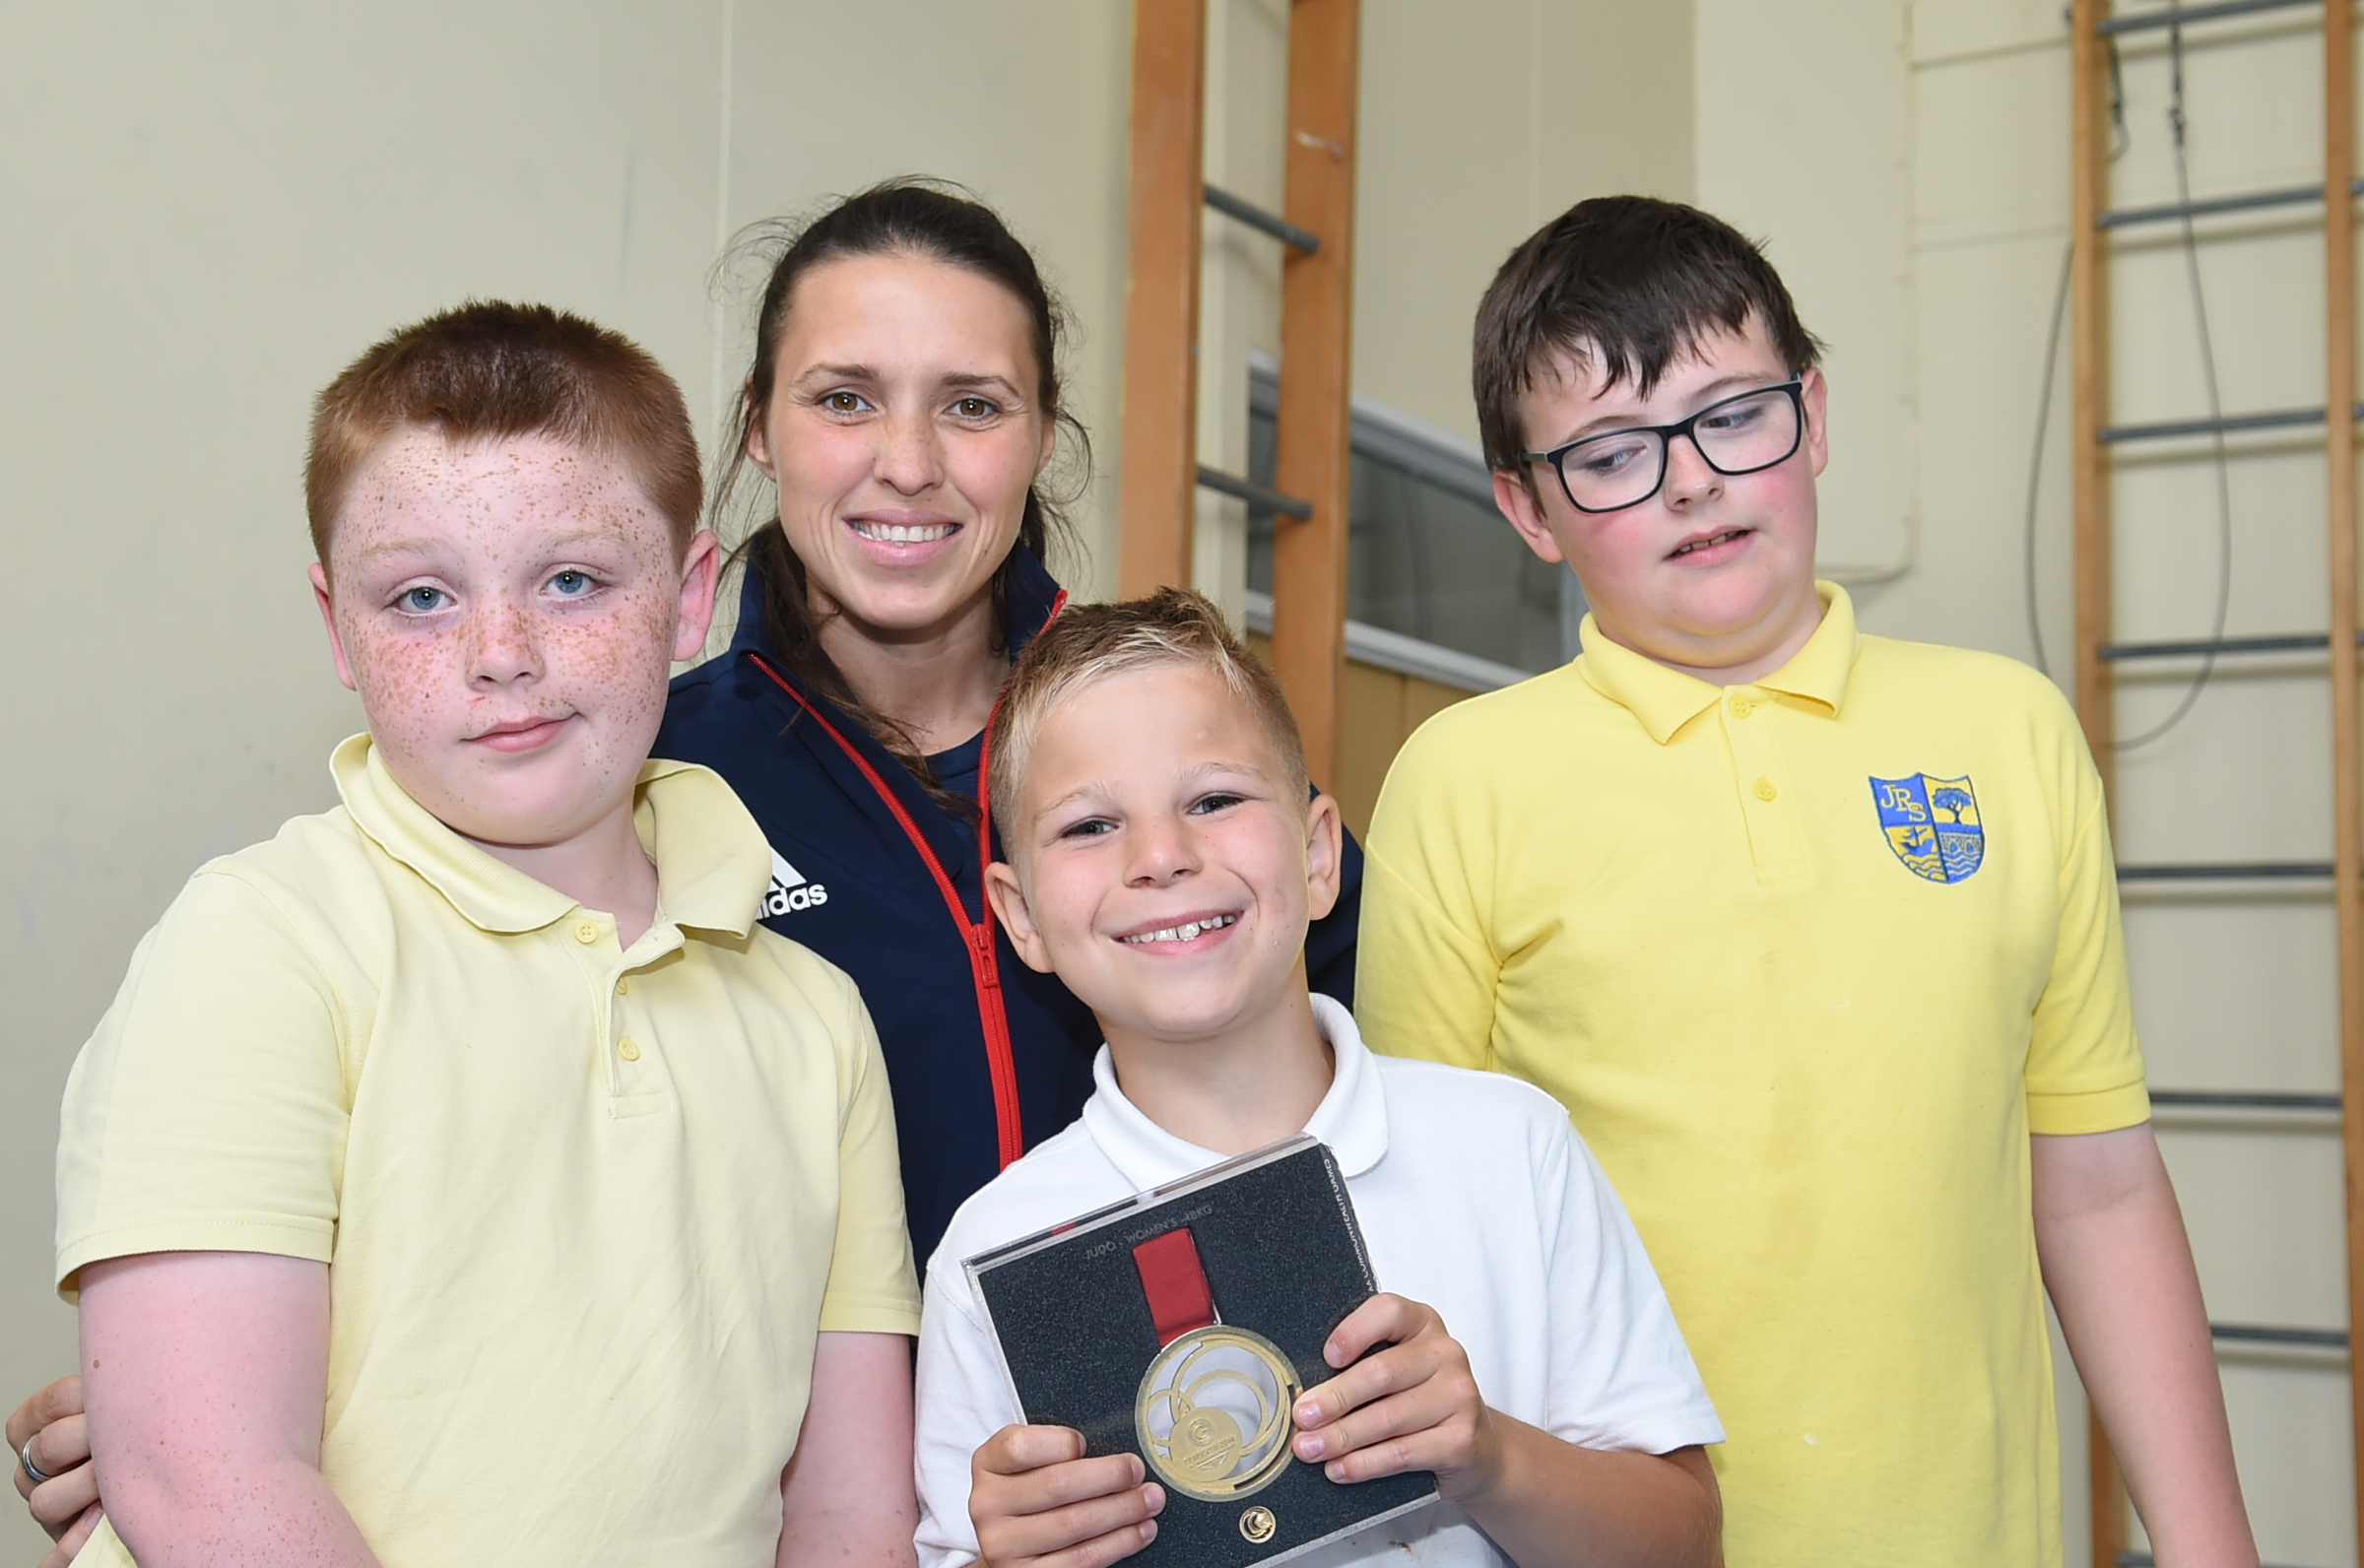 Olympic athlete visits James Reid School